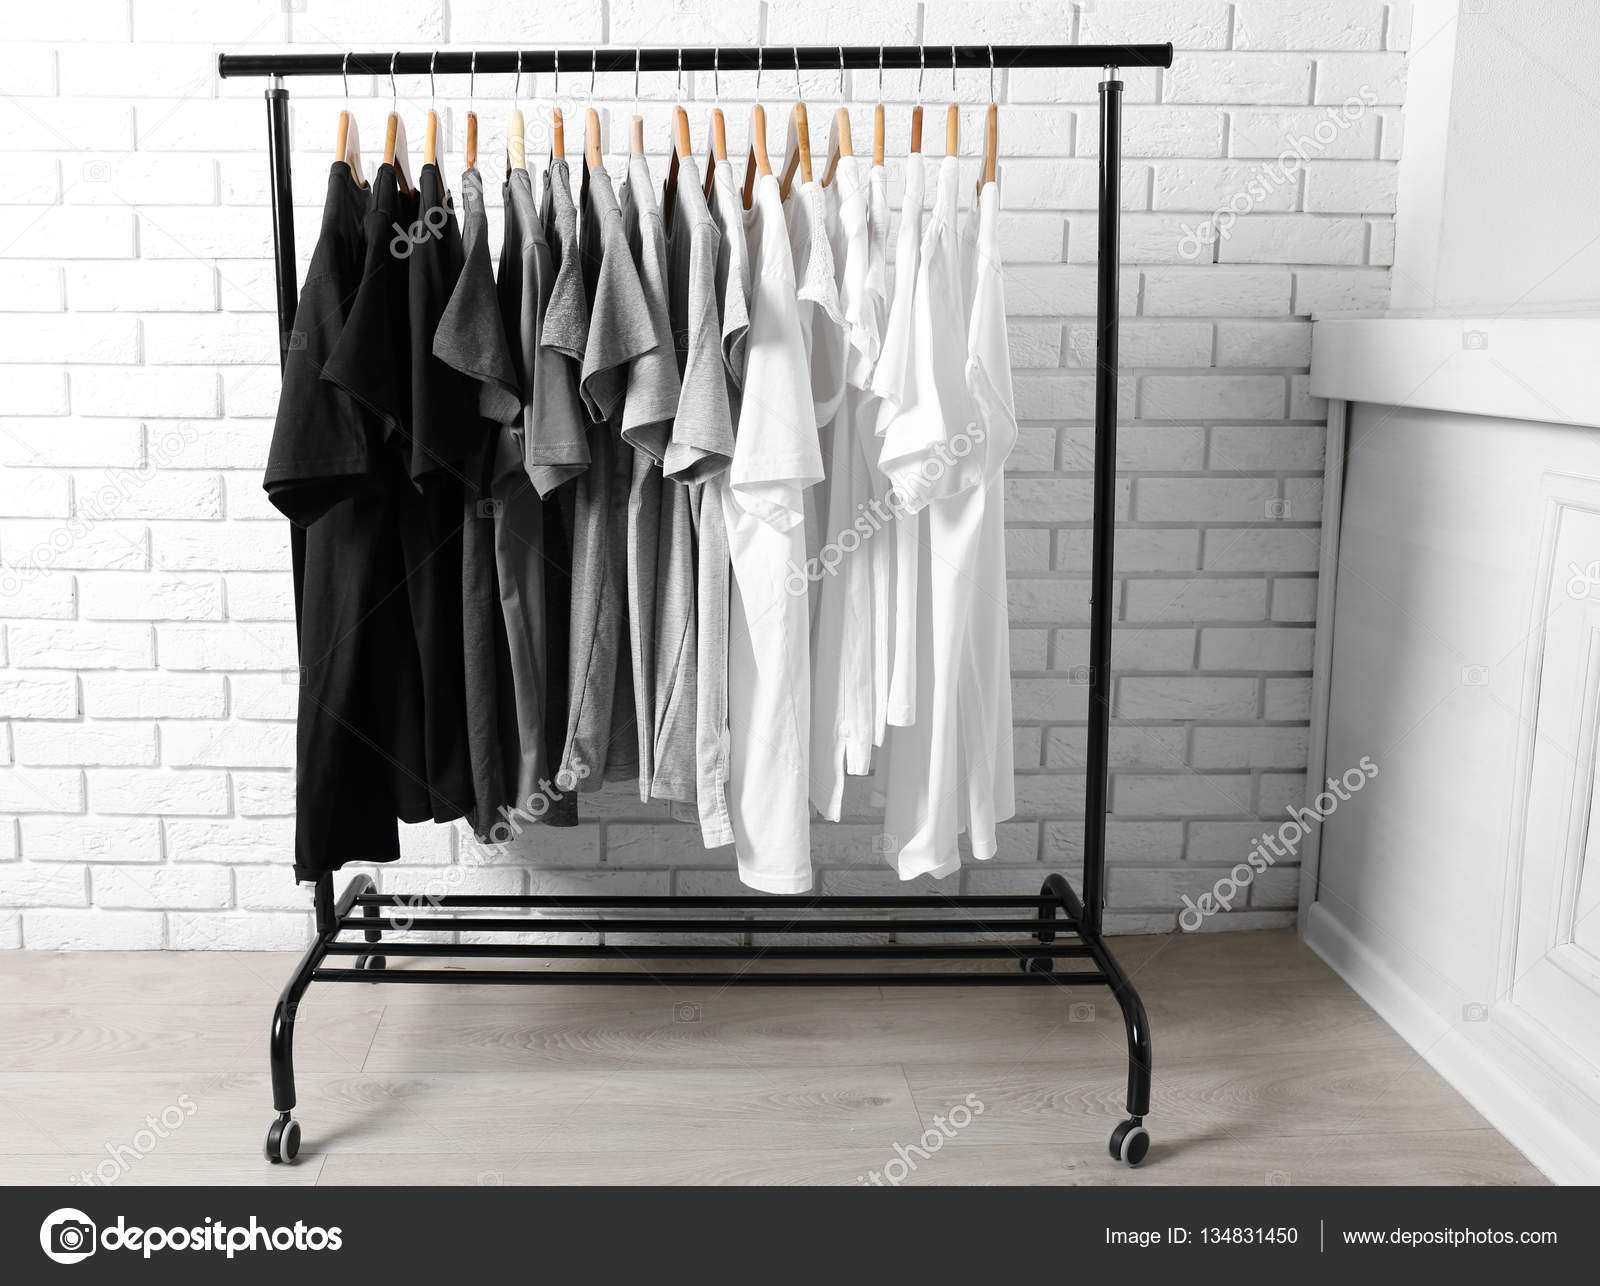 T-shirts on hangers against brick wall — Stock Photo